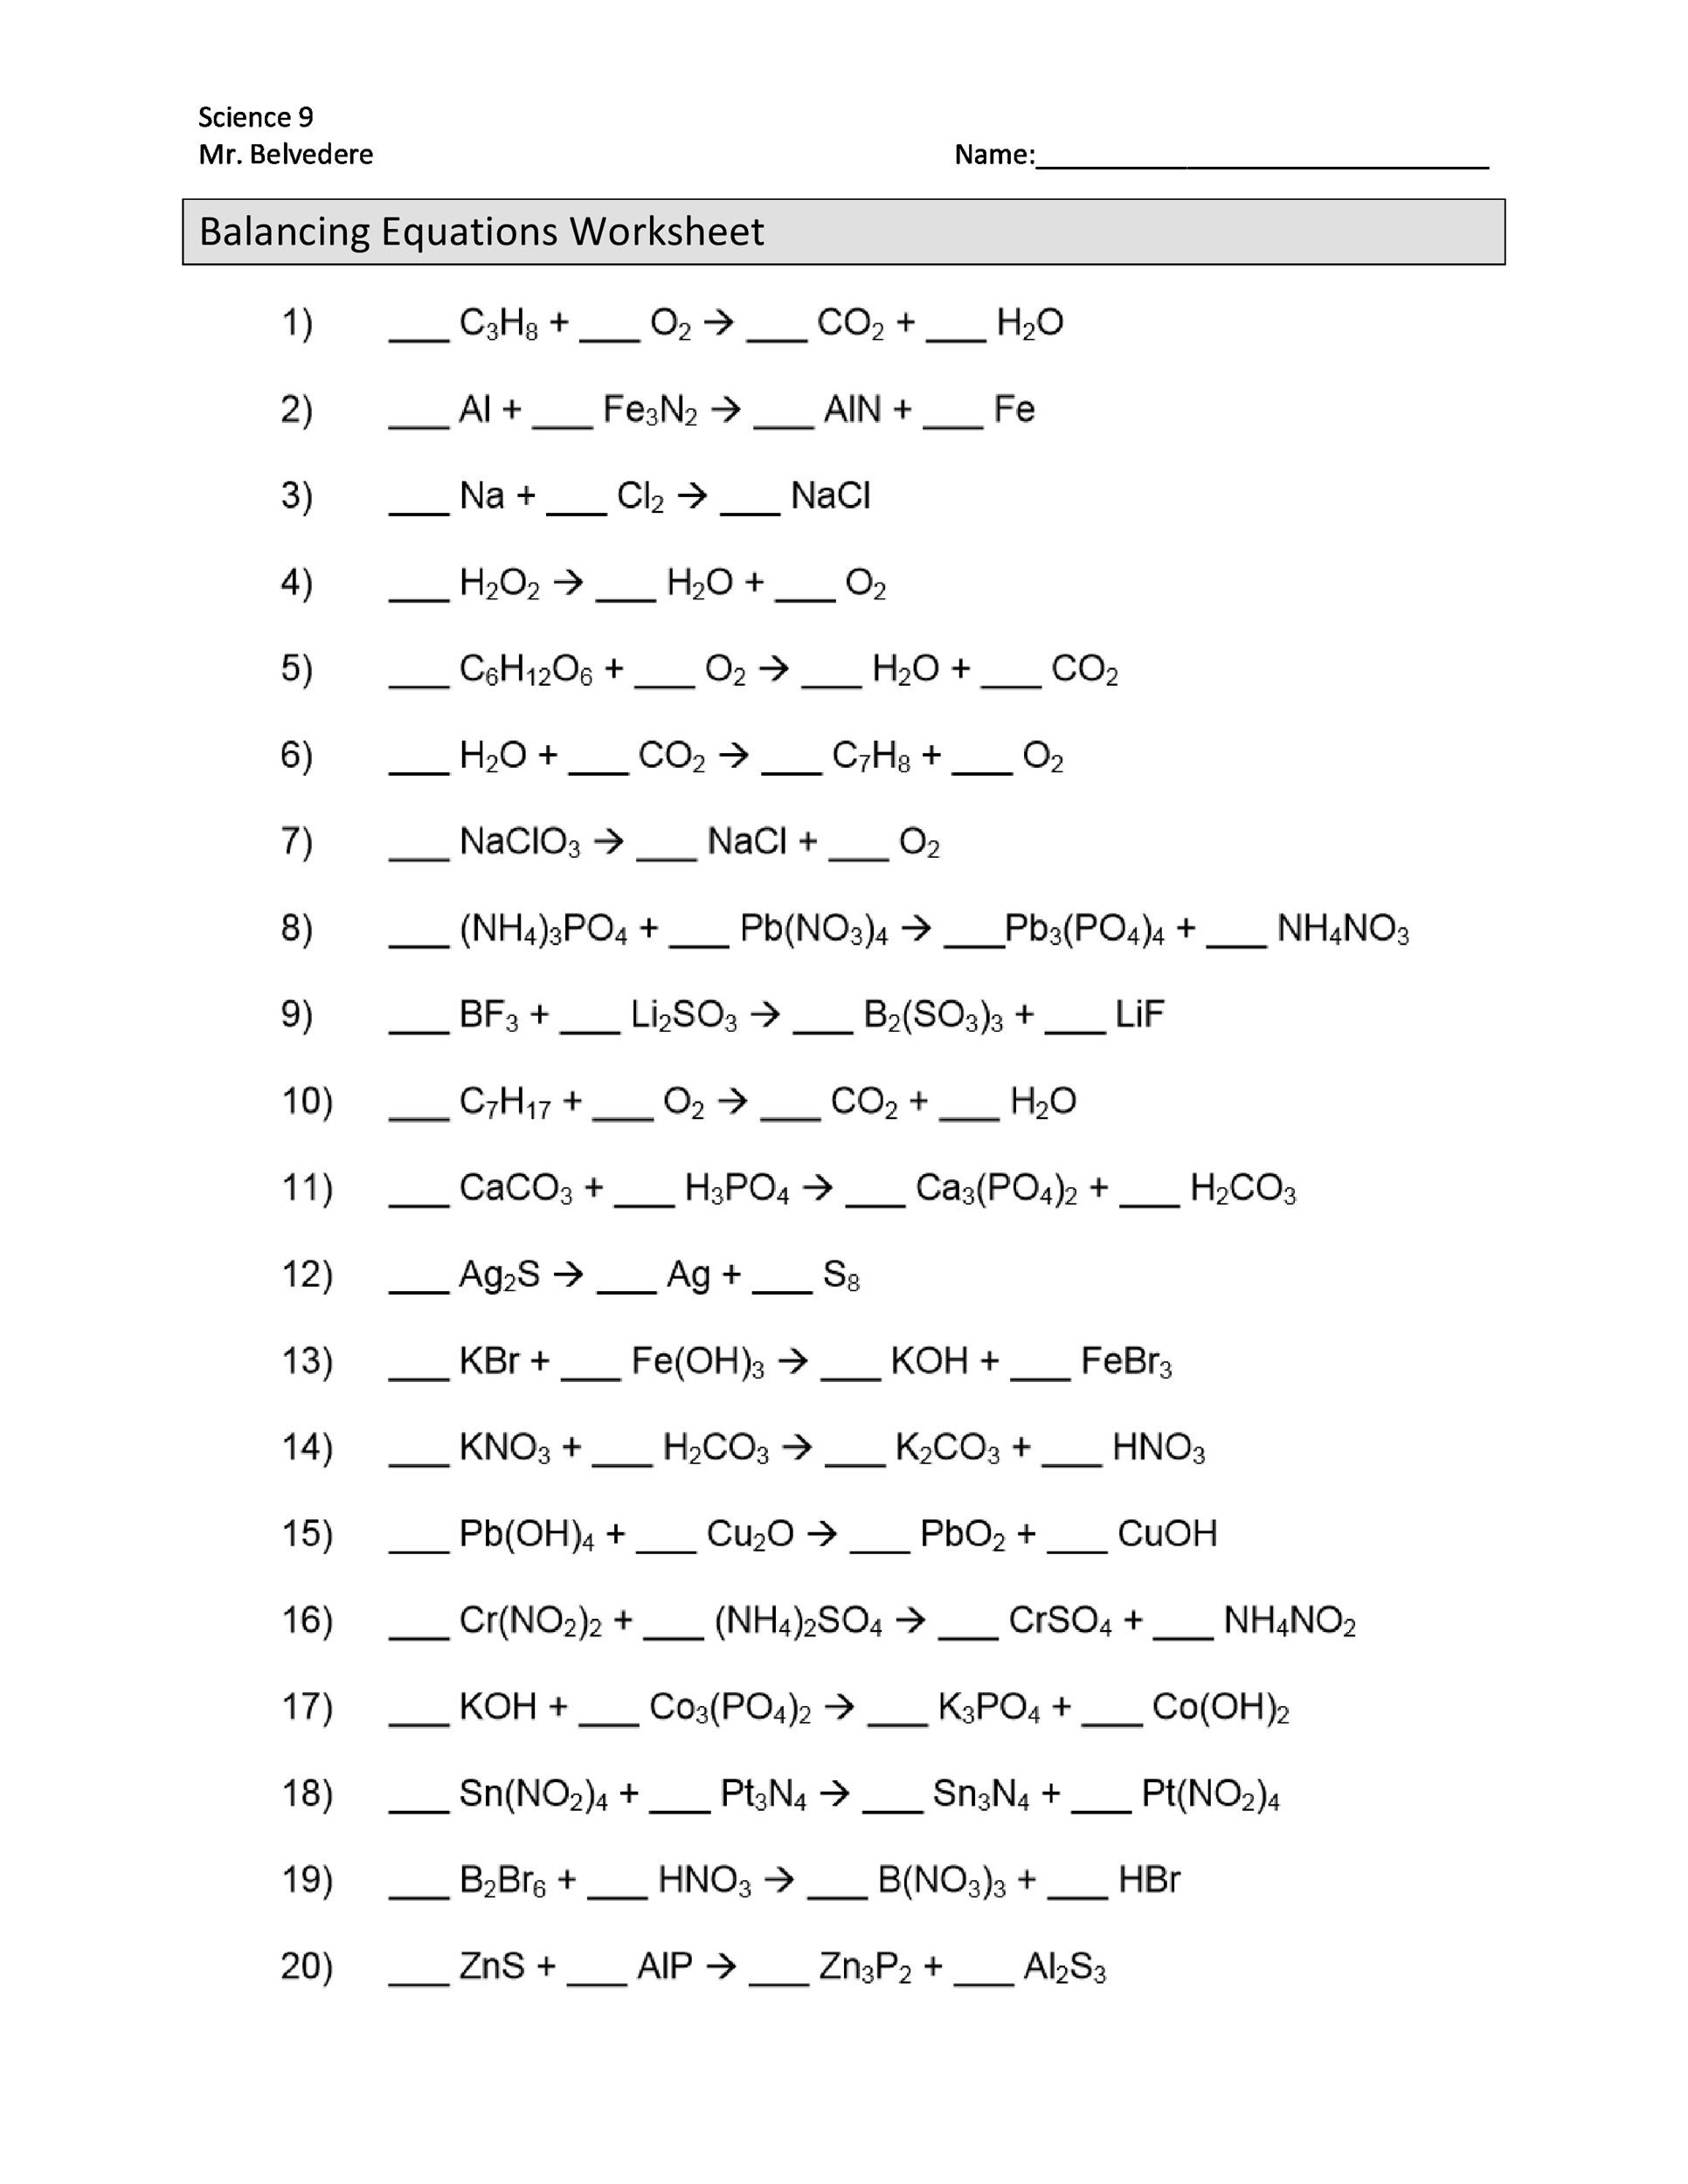 Balancing Equation Worksheet with Answers 49 Balancing Chemical Equations Worksheets [with Answers]